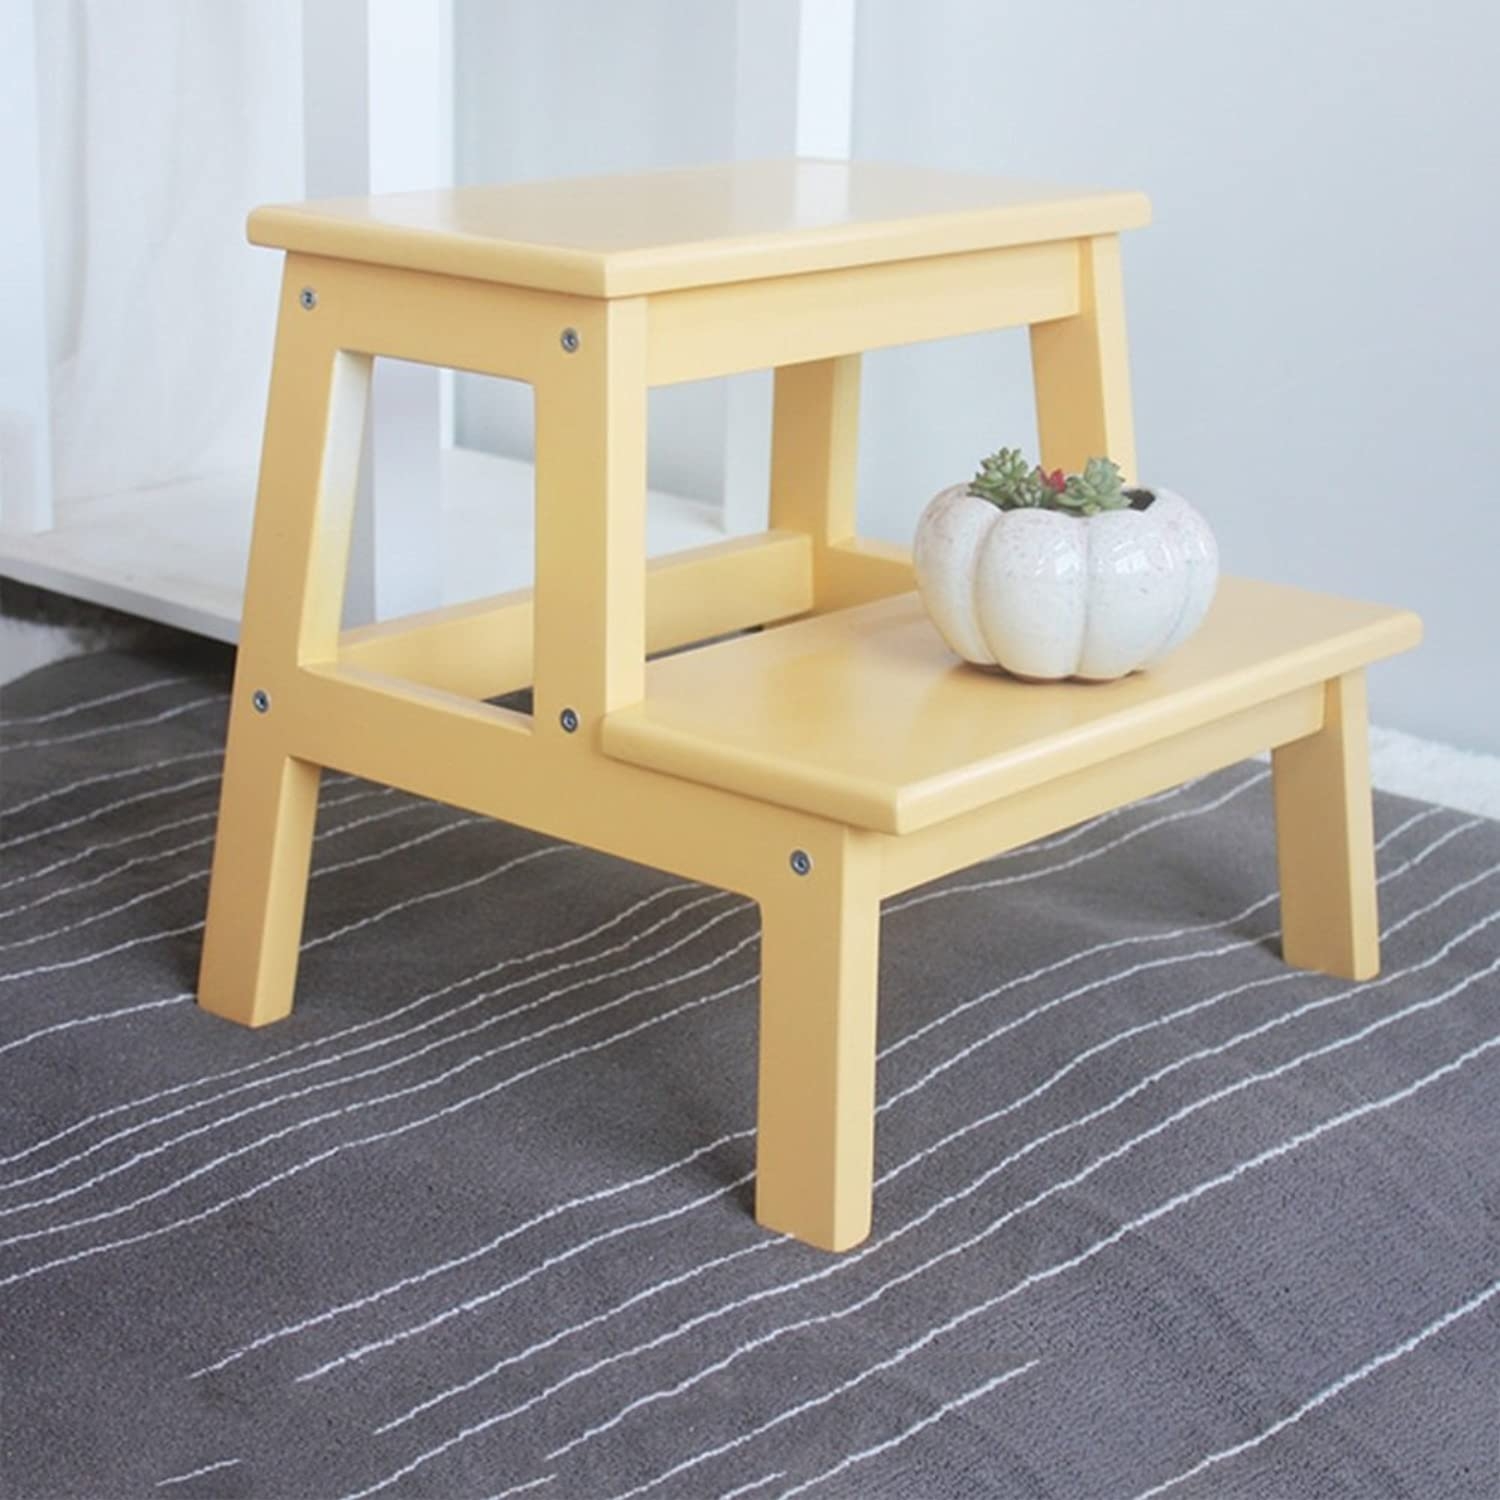 PENGFEI Folding Ladder Stool Step Solid Wood Multifunction Portable Household Change shoes Library 2 Steps 7 colors 39.5x35x35CM Furniture (color   Yellow)